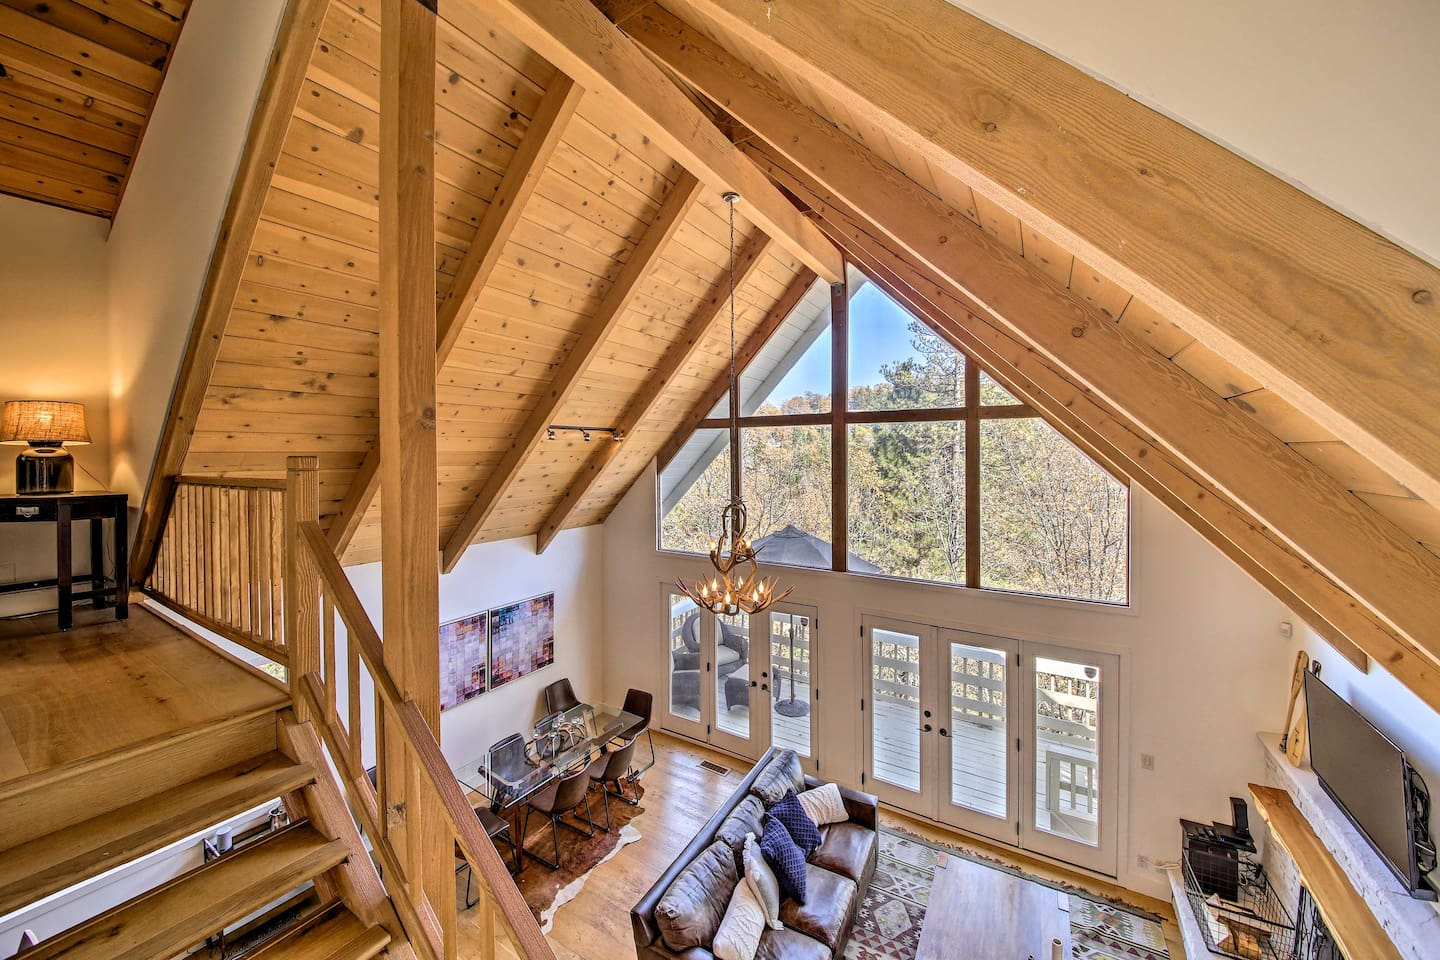 Come visit this stunning 4-bedroom, 3-bathroom home in Lake Arrowhead.